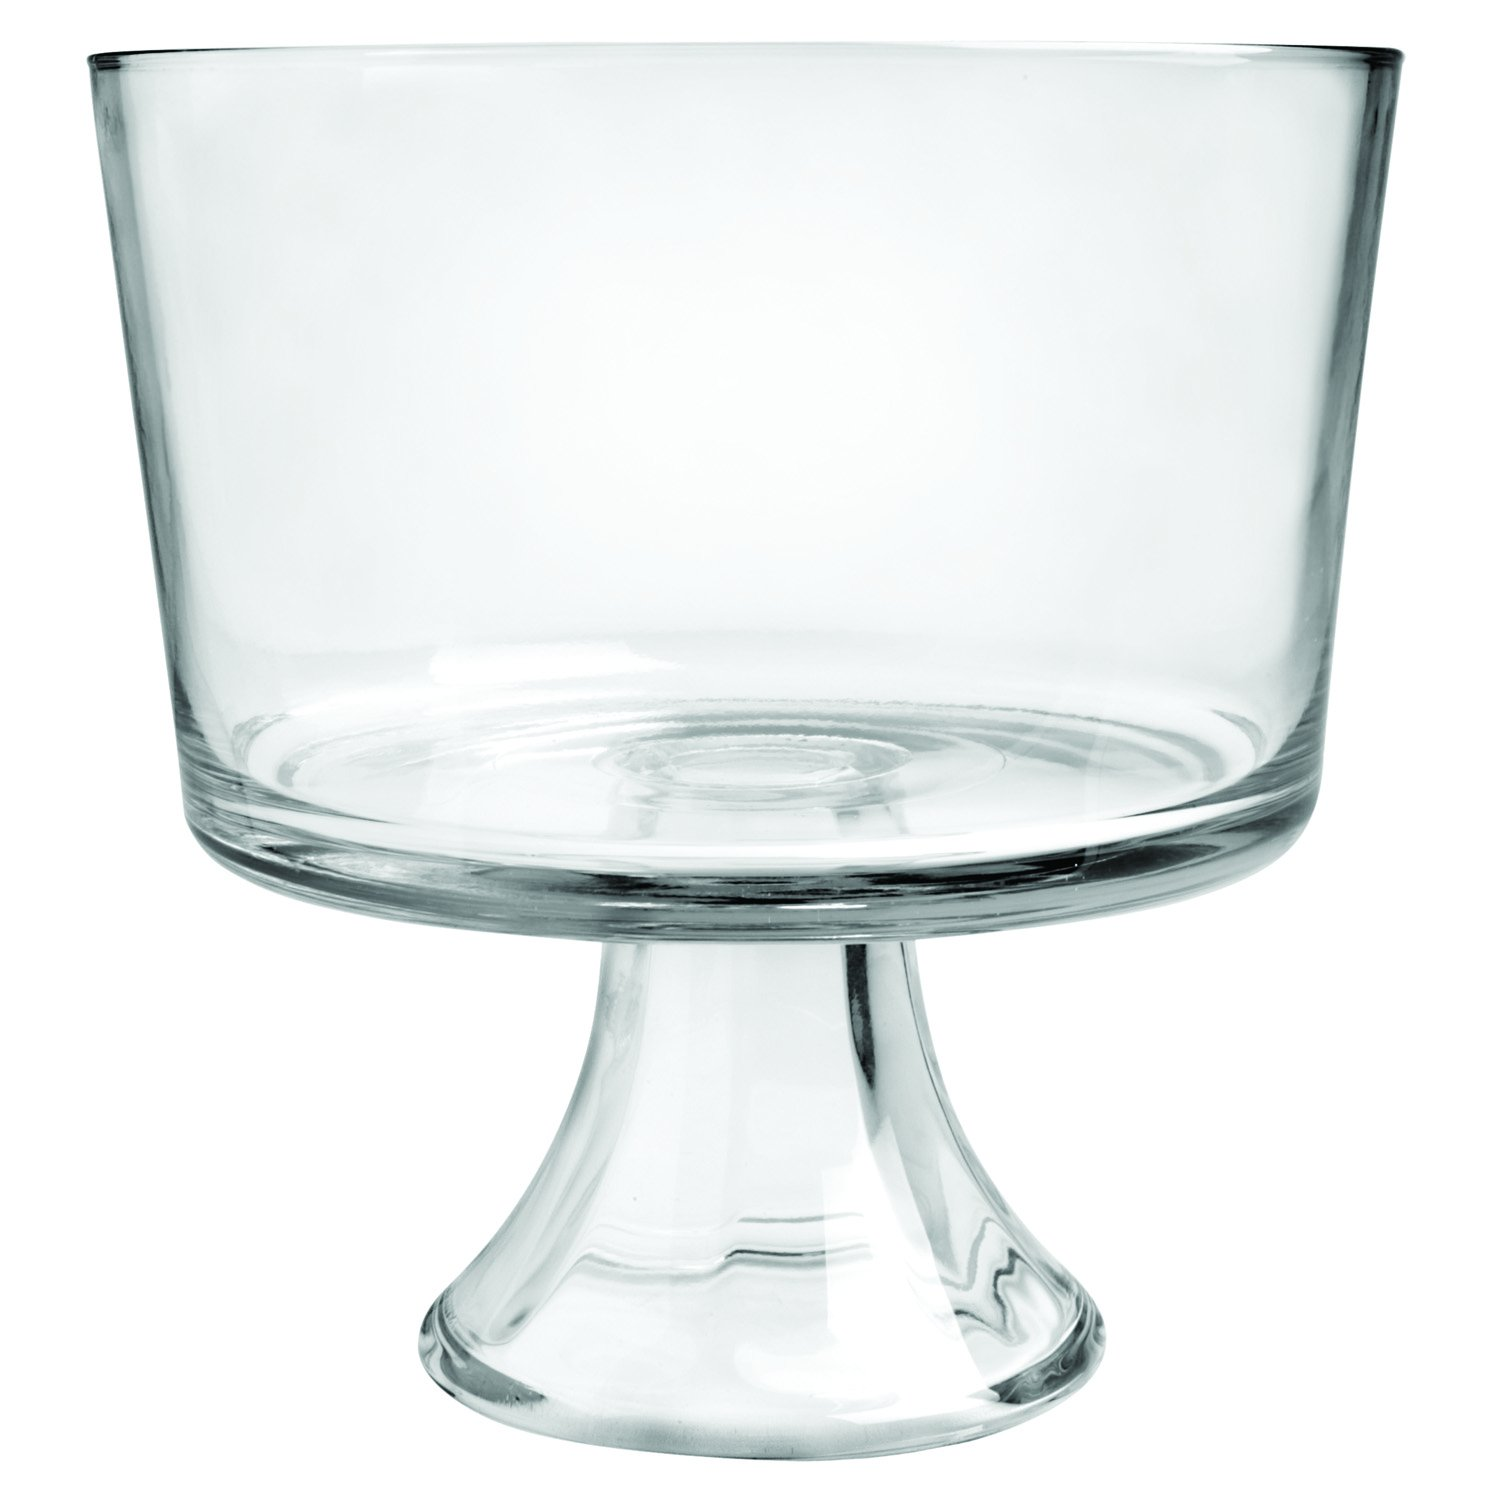 Anchor Hocking Presence Trifle Footed Dessert Bowl by Anchor Hocking